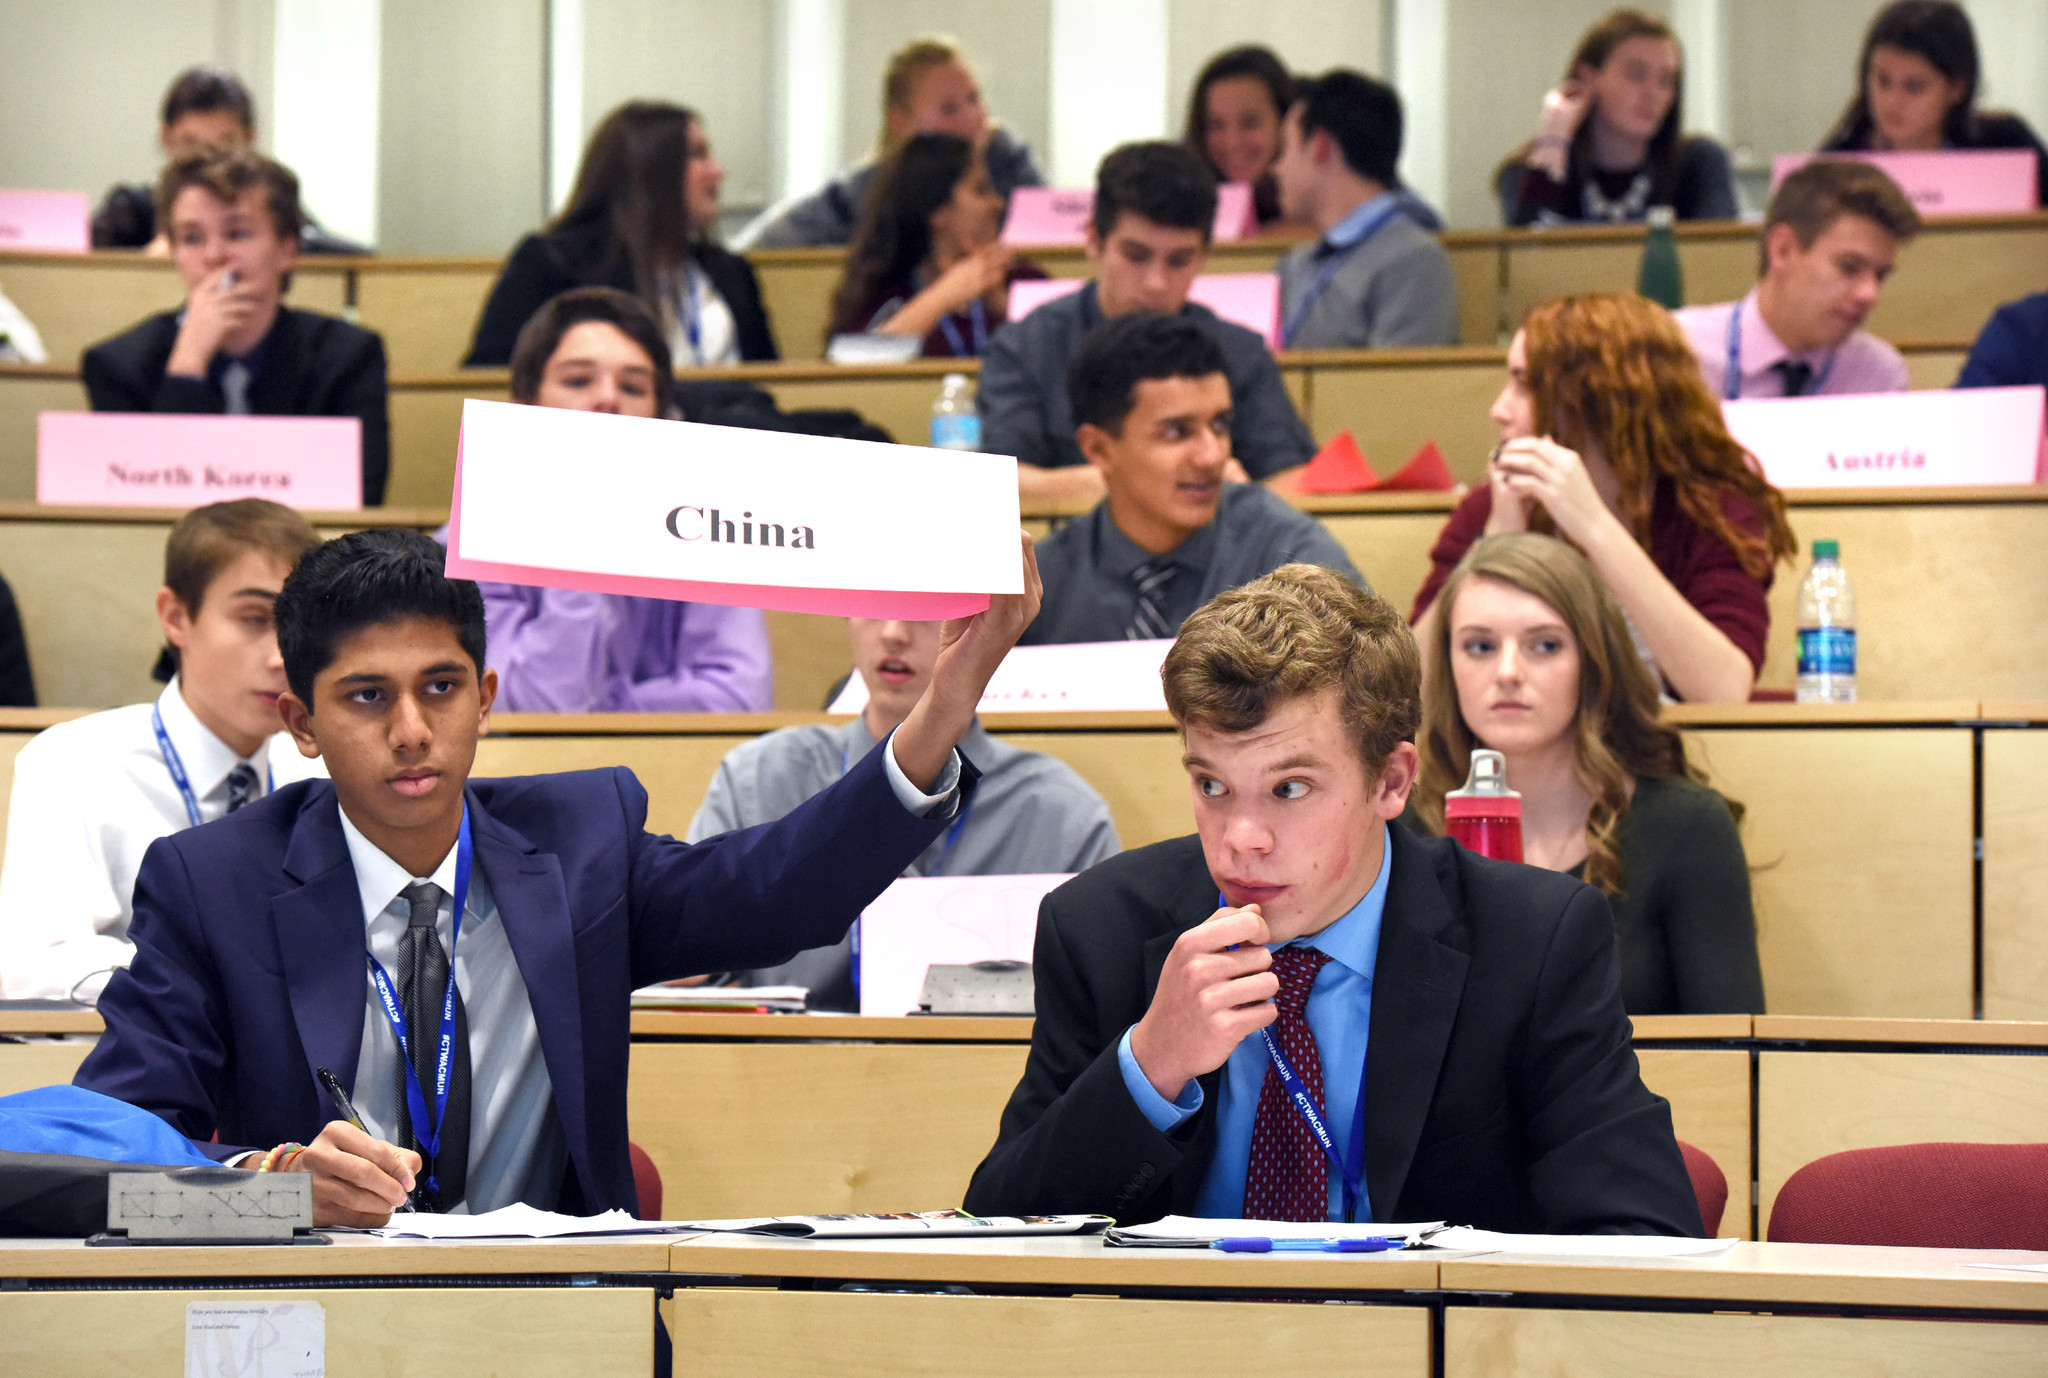 Students above are shown gathering for Model UN.